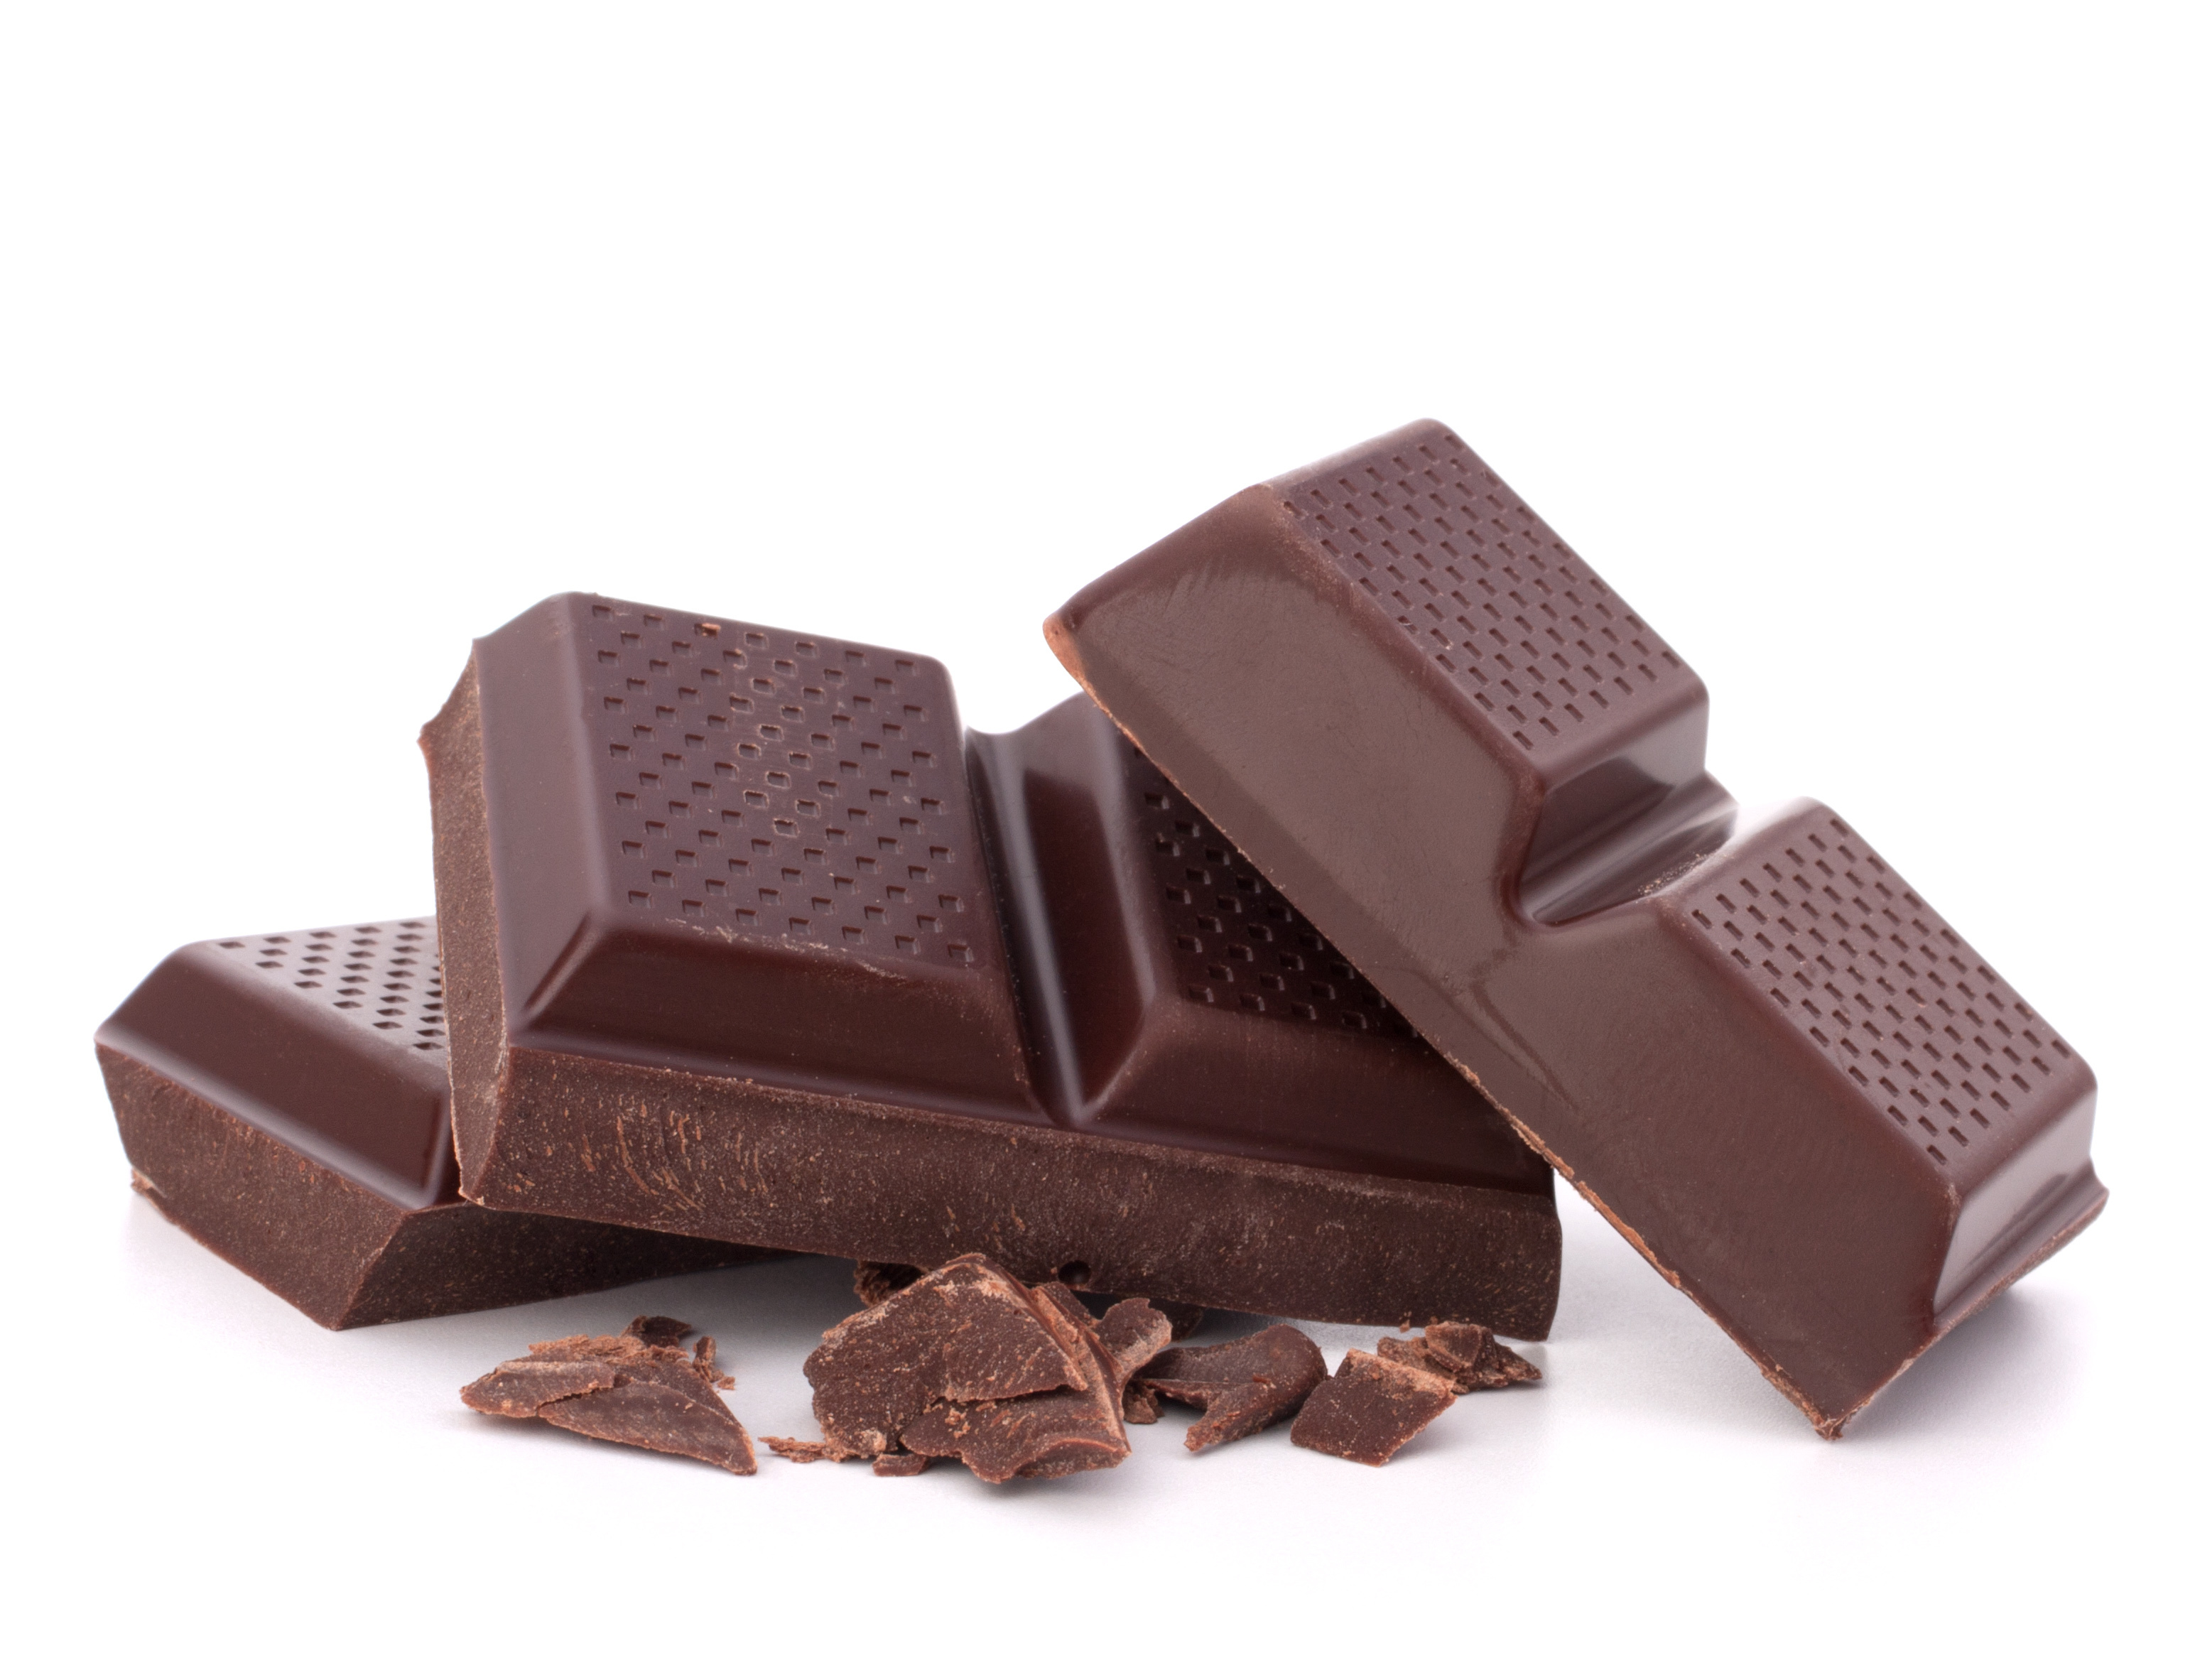 . PlusPng.com Chocolate Image CnMuqi PlusPng.com  - Chocolate PNG HD